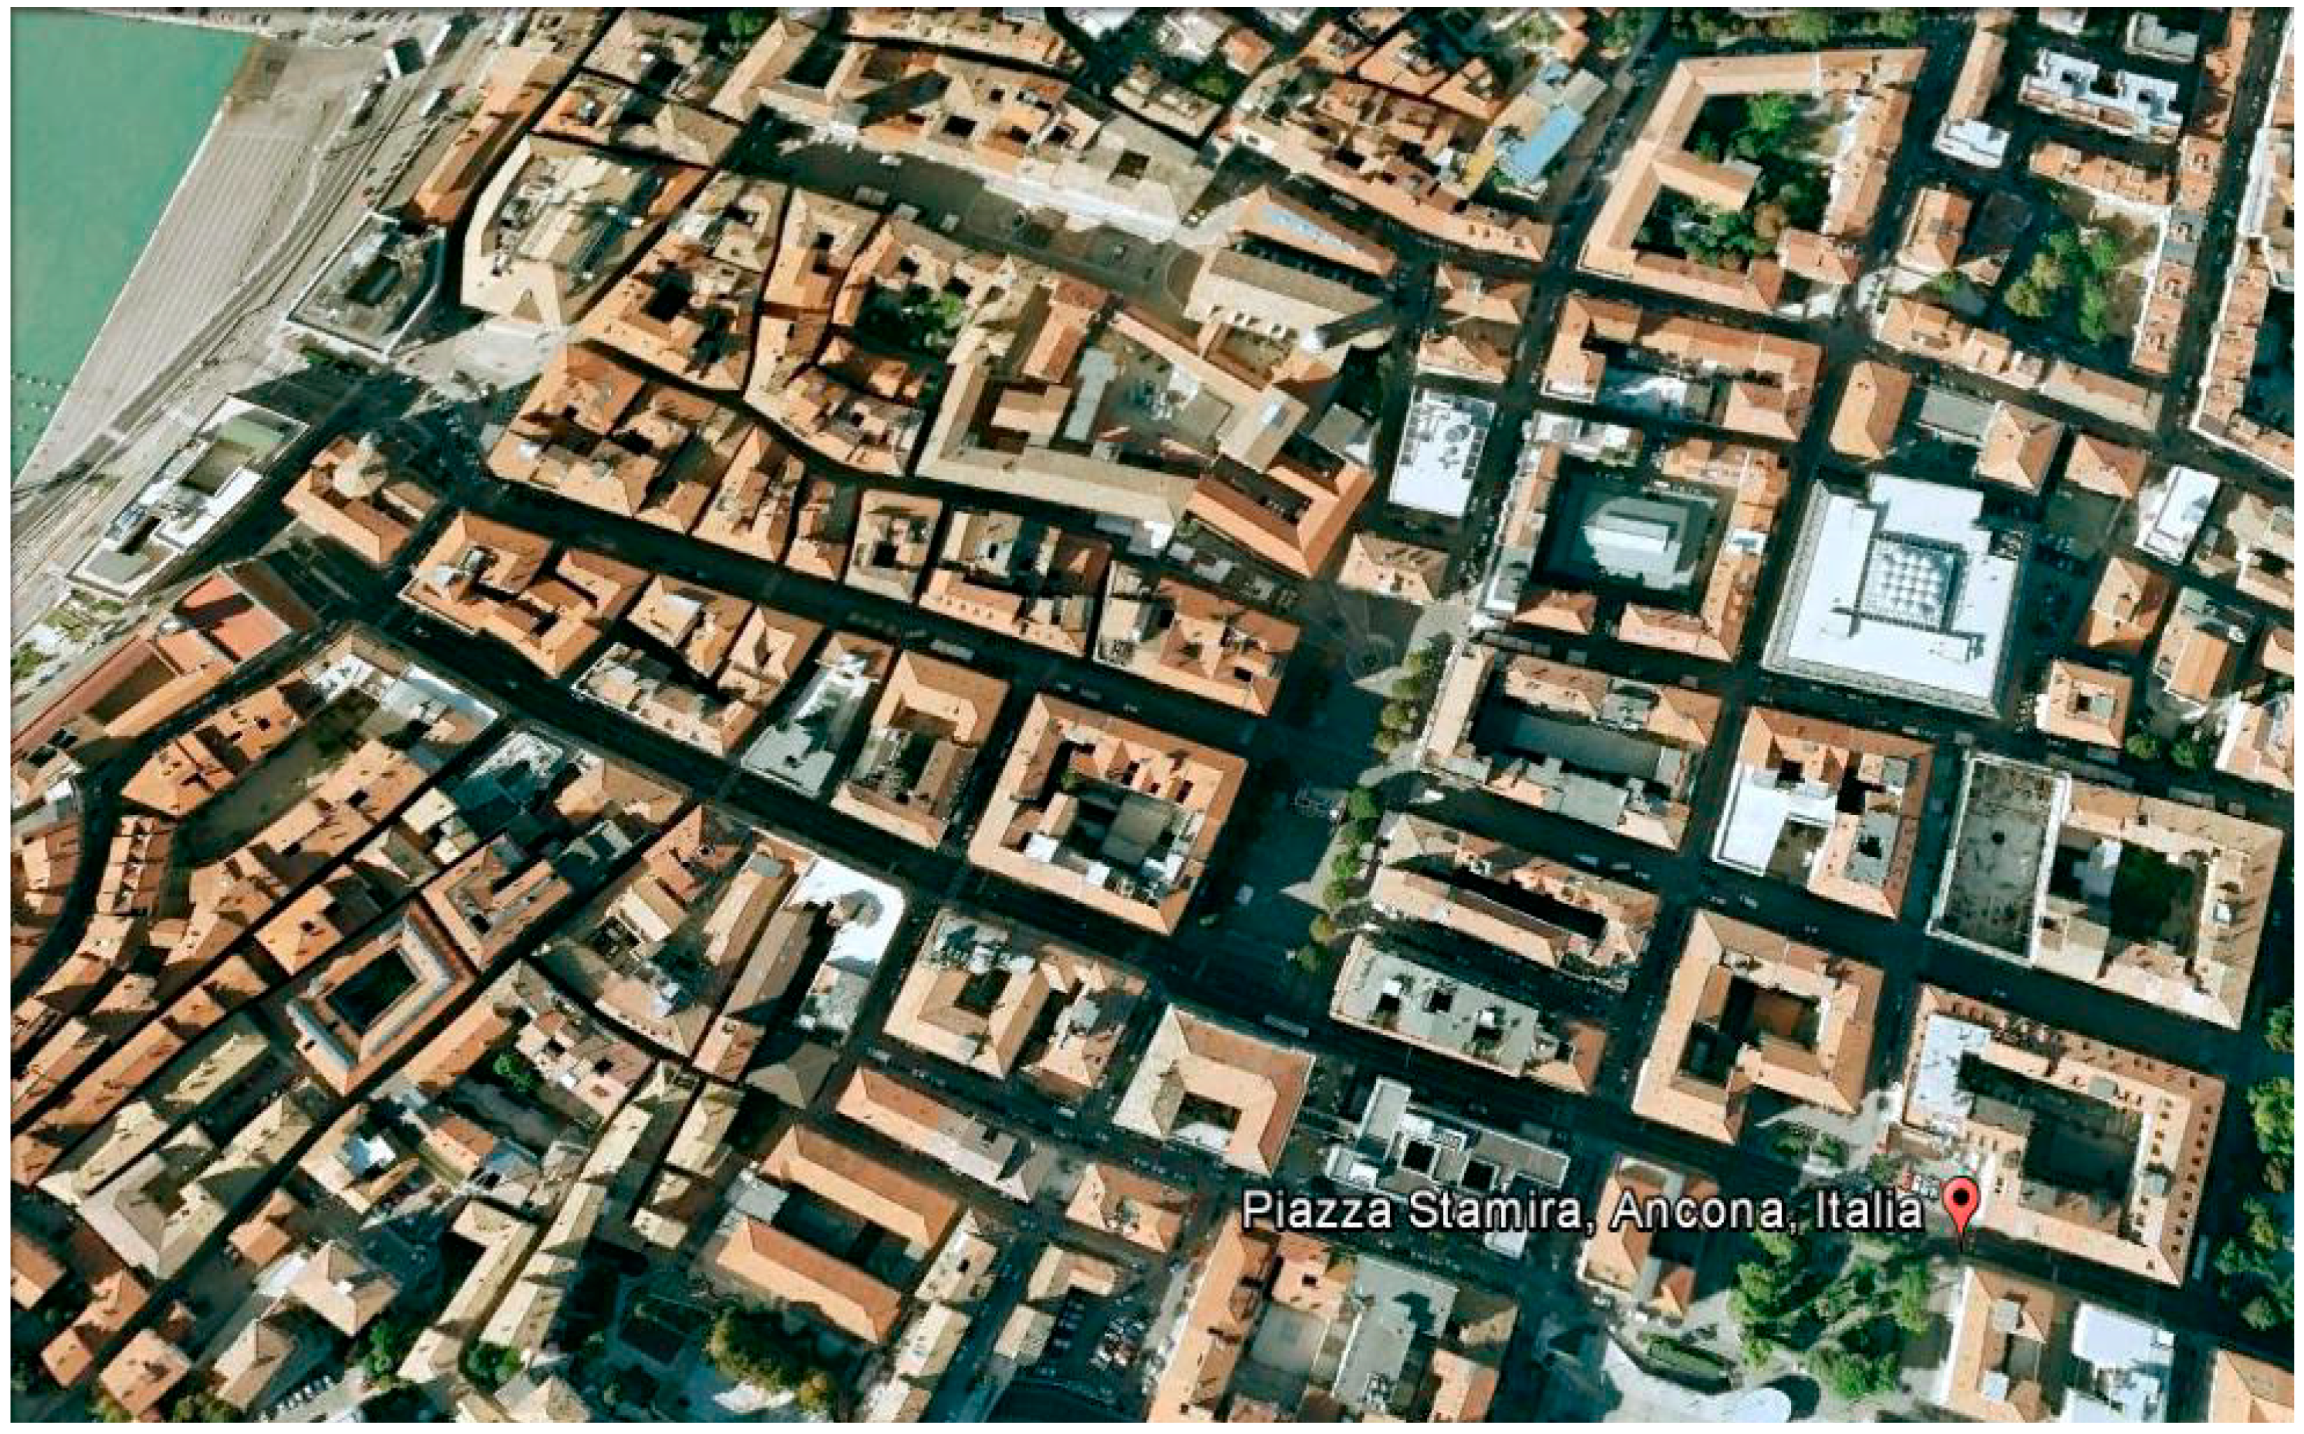 Sustainability | Free Full-Text | A Parametric Optimization Approach to  Mitigating the Urban Heat Island Effect: A Case Study in Ancona, Italy |  HTML - Urban Settlement PNG